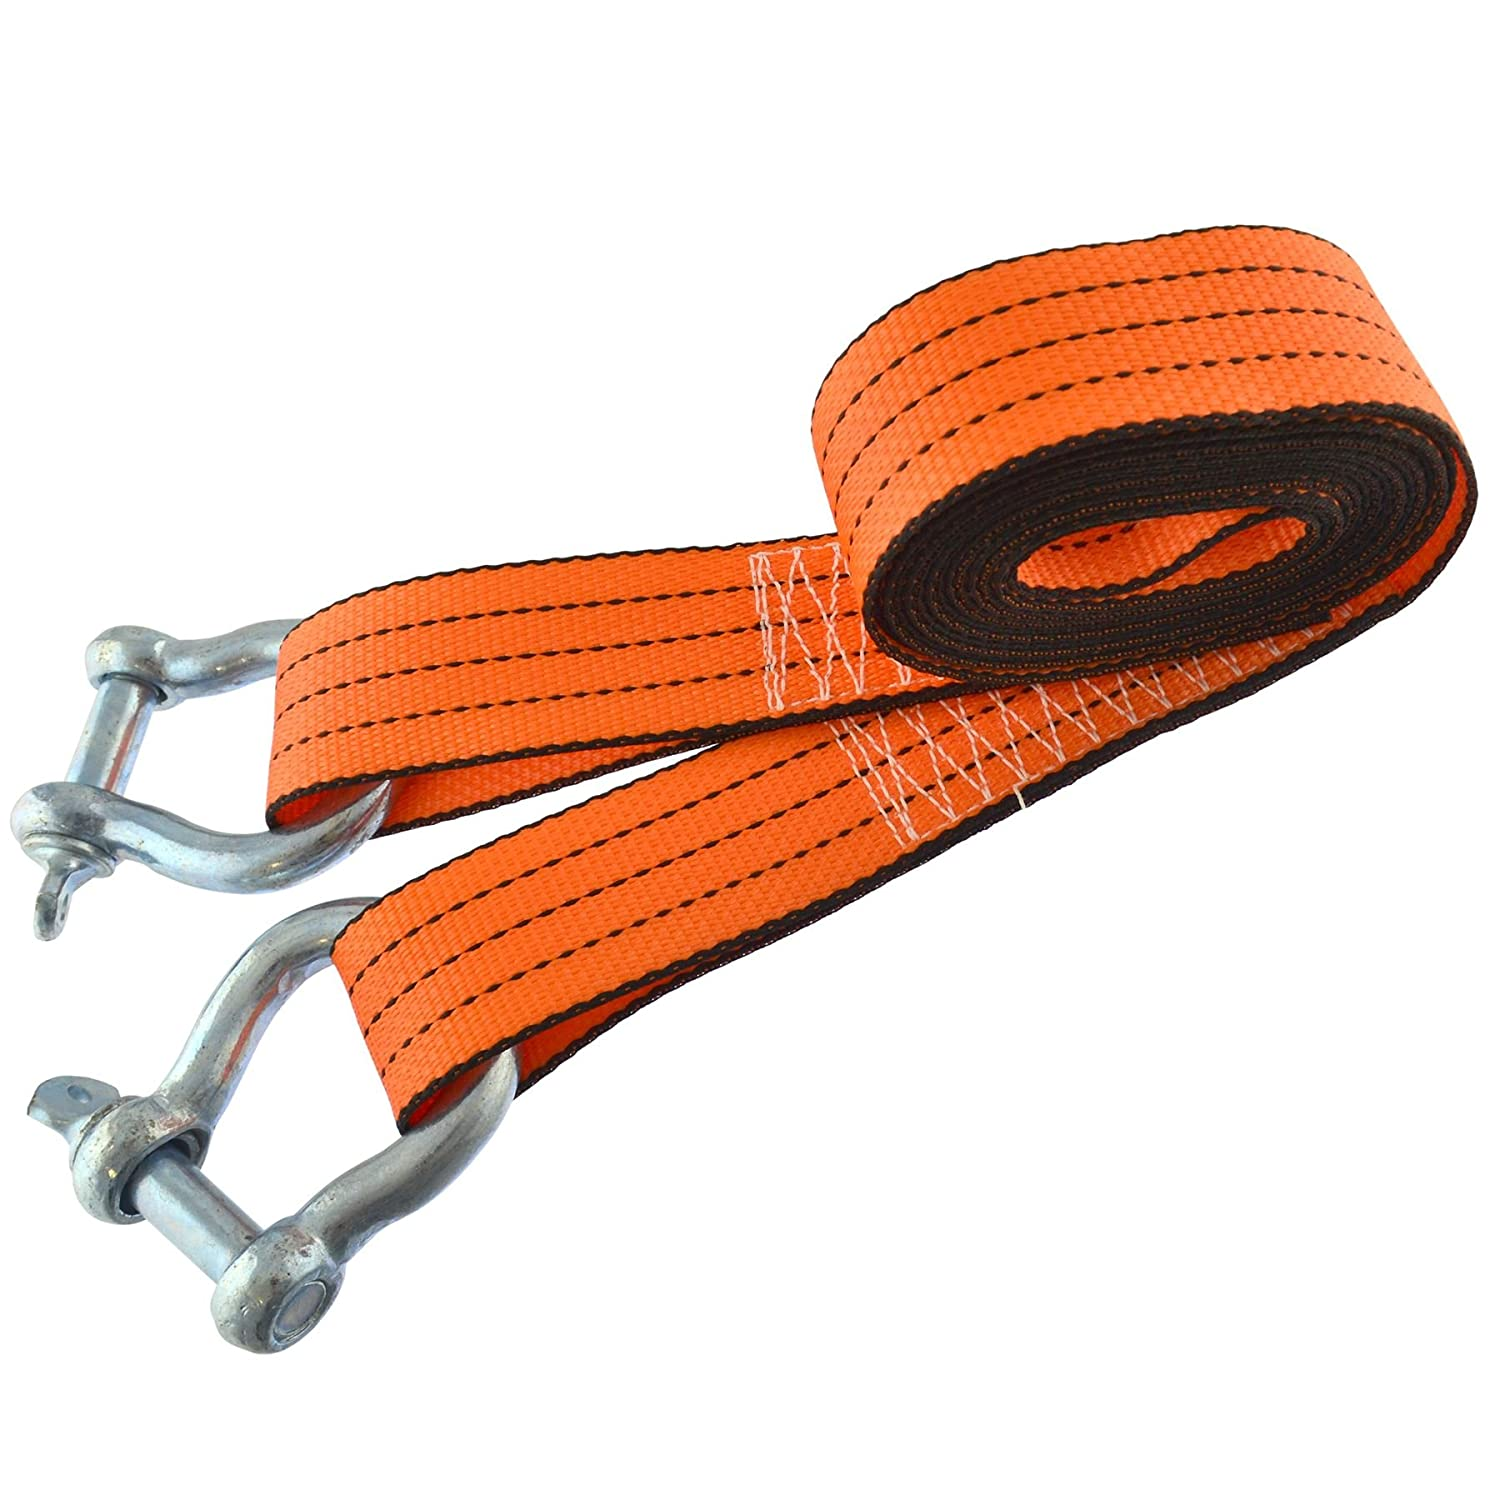 AB Tools Tow Rope//Towing Road Recovery Strap with Two Shackles 4 Metre 3 Ton SM007